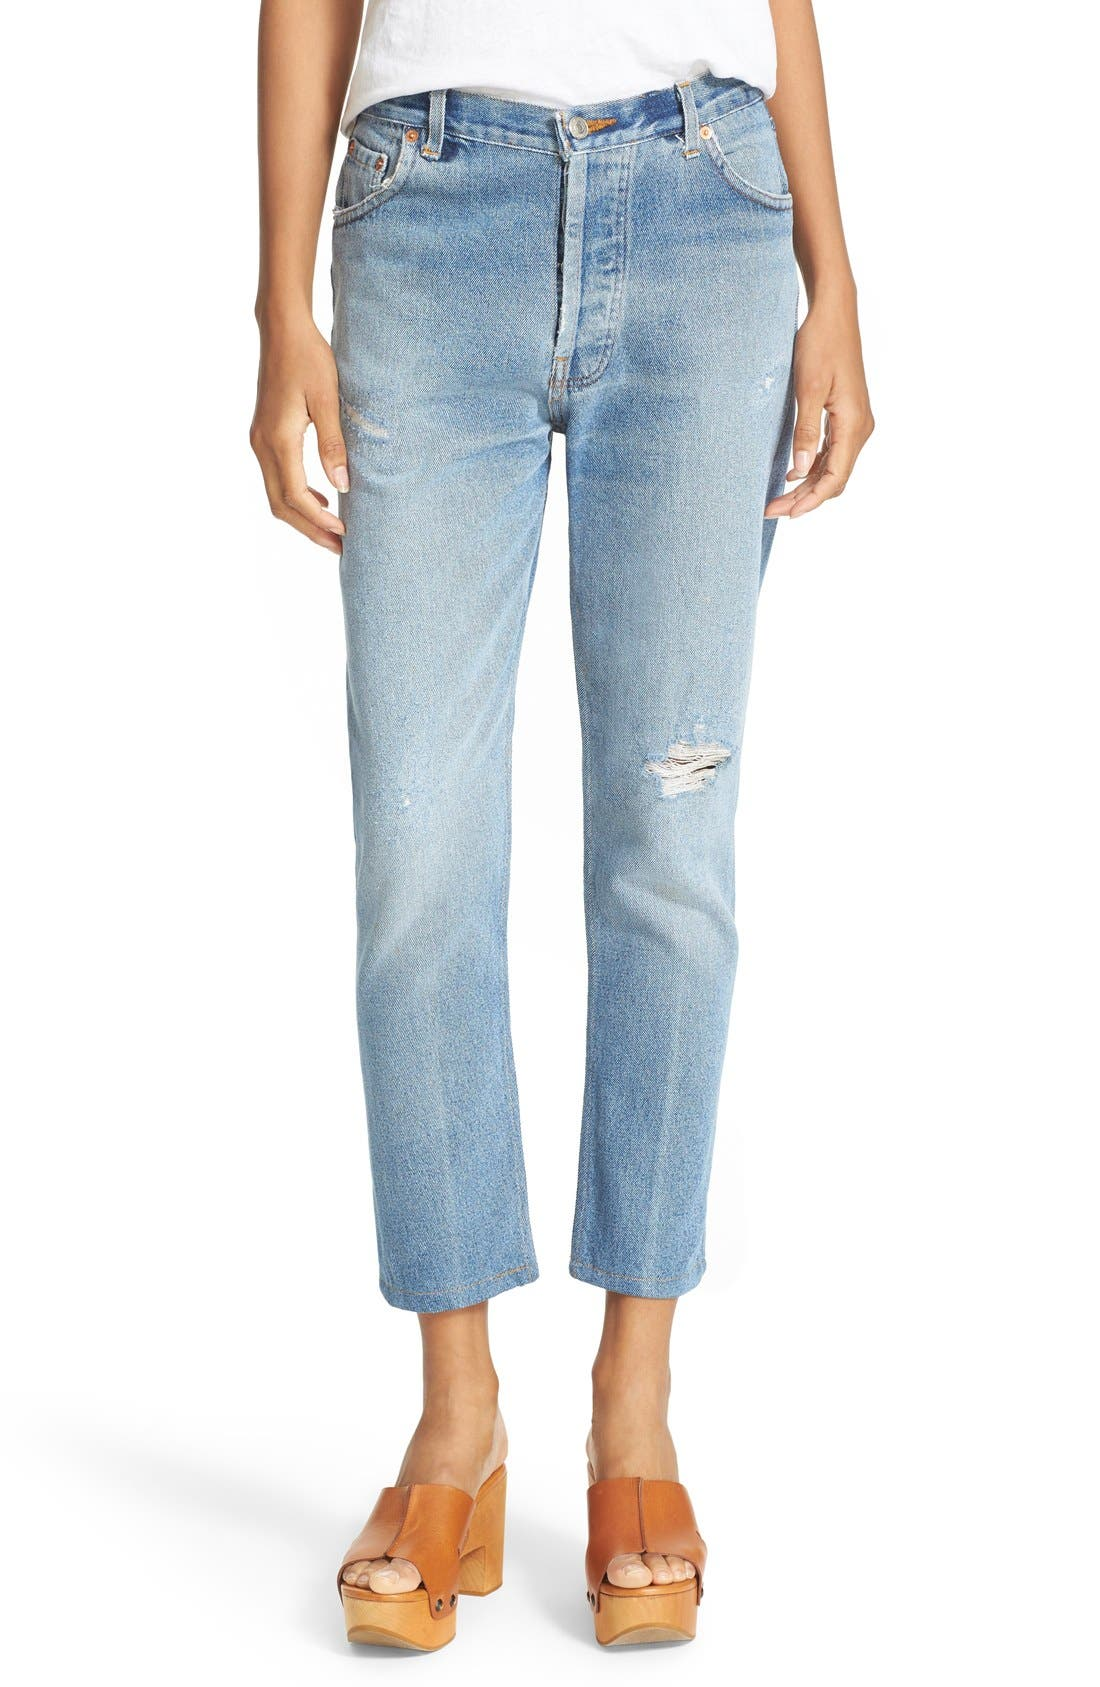 Alternate Image 1 Selected - Re/Done Reconstructed High Waist Ankle Crop Jeans